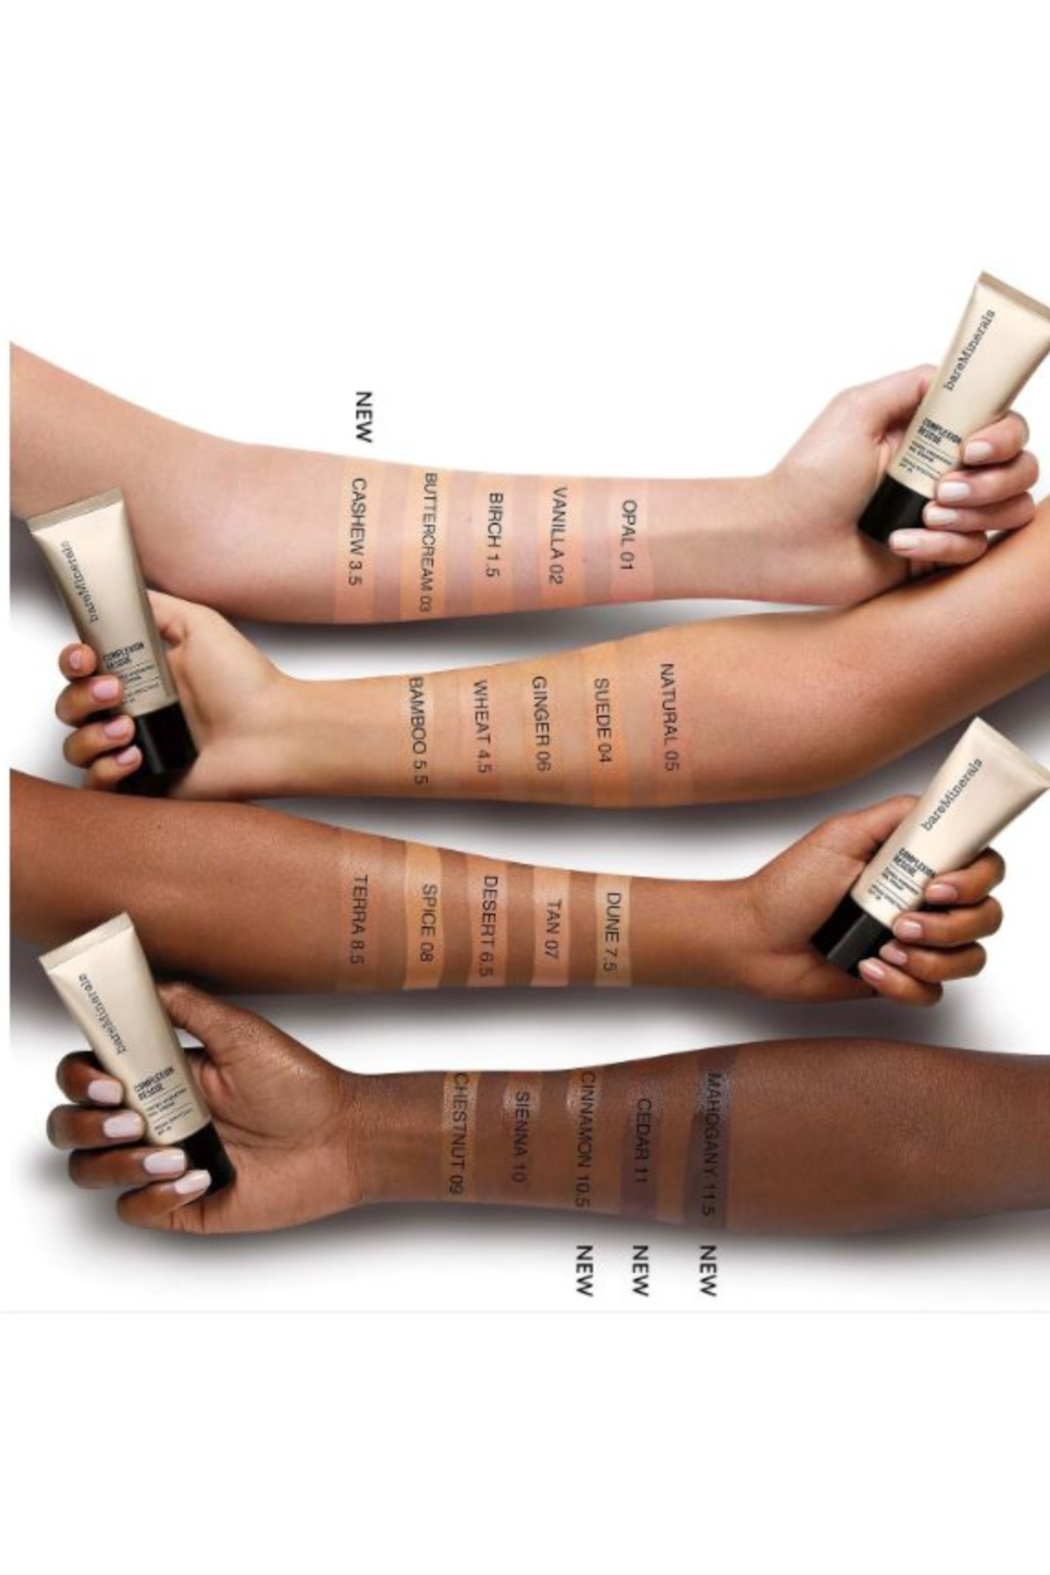 bareMinerals COMPLEXION RESCUE™ TINTED MOISTURIZER - HYDRATING GEL CREAM BROAD SPECTRUM SPF 30 - Front Full Image